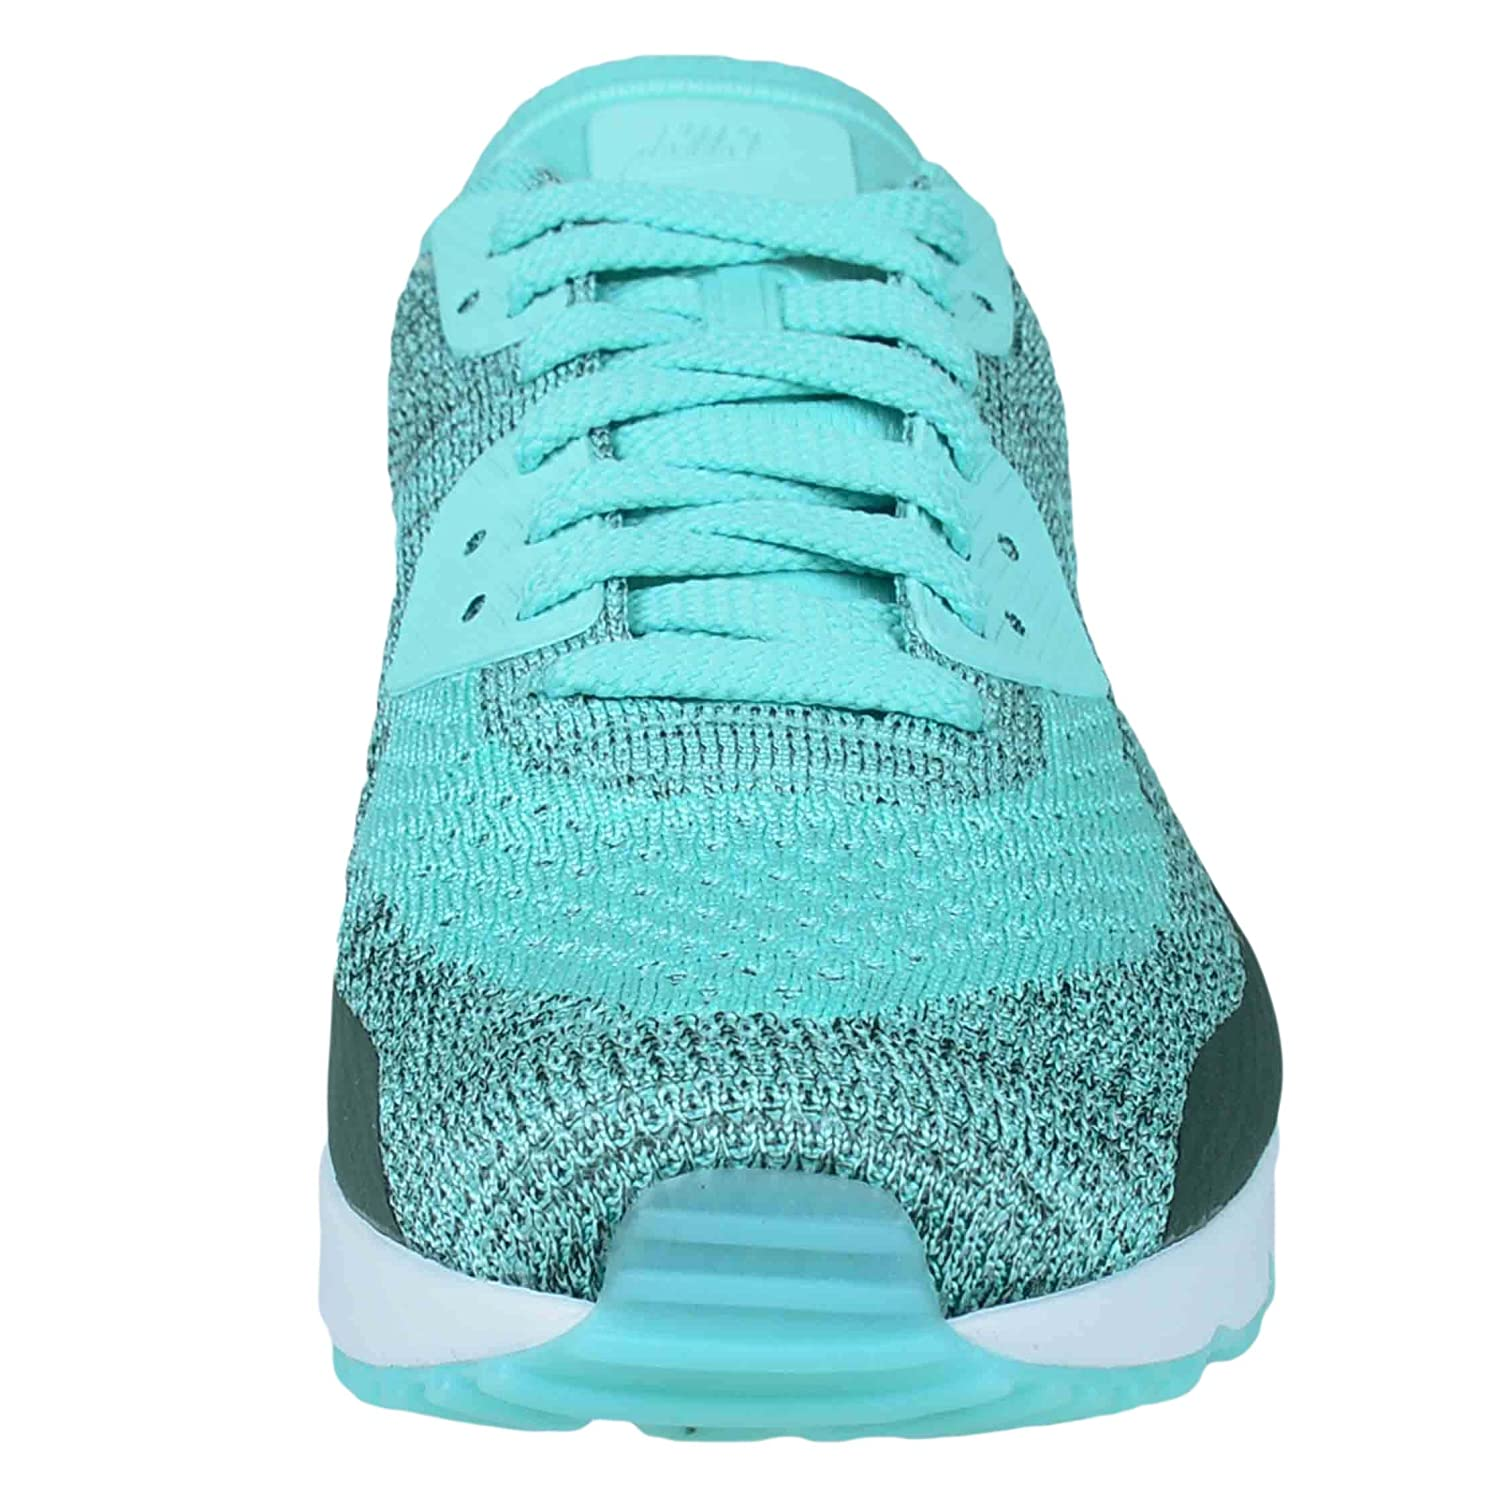 finest selection 3a0b8 76ef4 Amazon.com   Nike AIR MAX 90 Ultra 2.0 Flyknit Hyper Turquoise Mens Running 875943  301   Fashion Sneakers